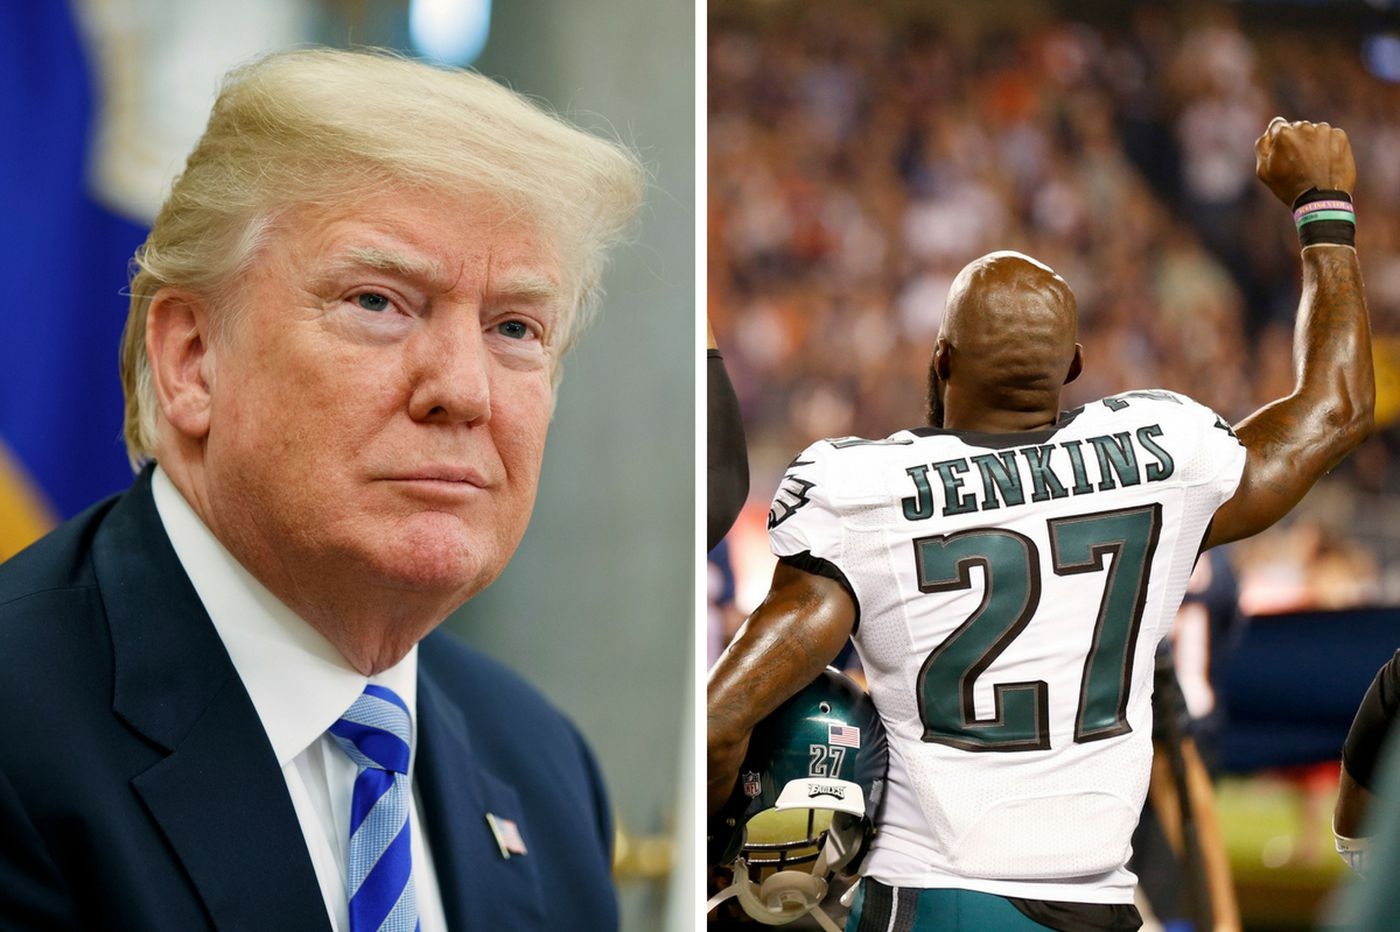 Trump absolutely correct to rescind Eagles' White House invitation | Opinion